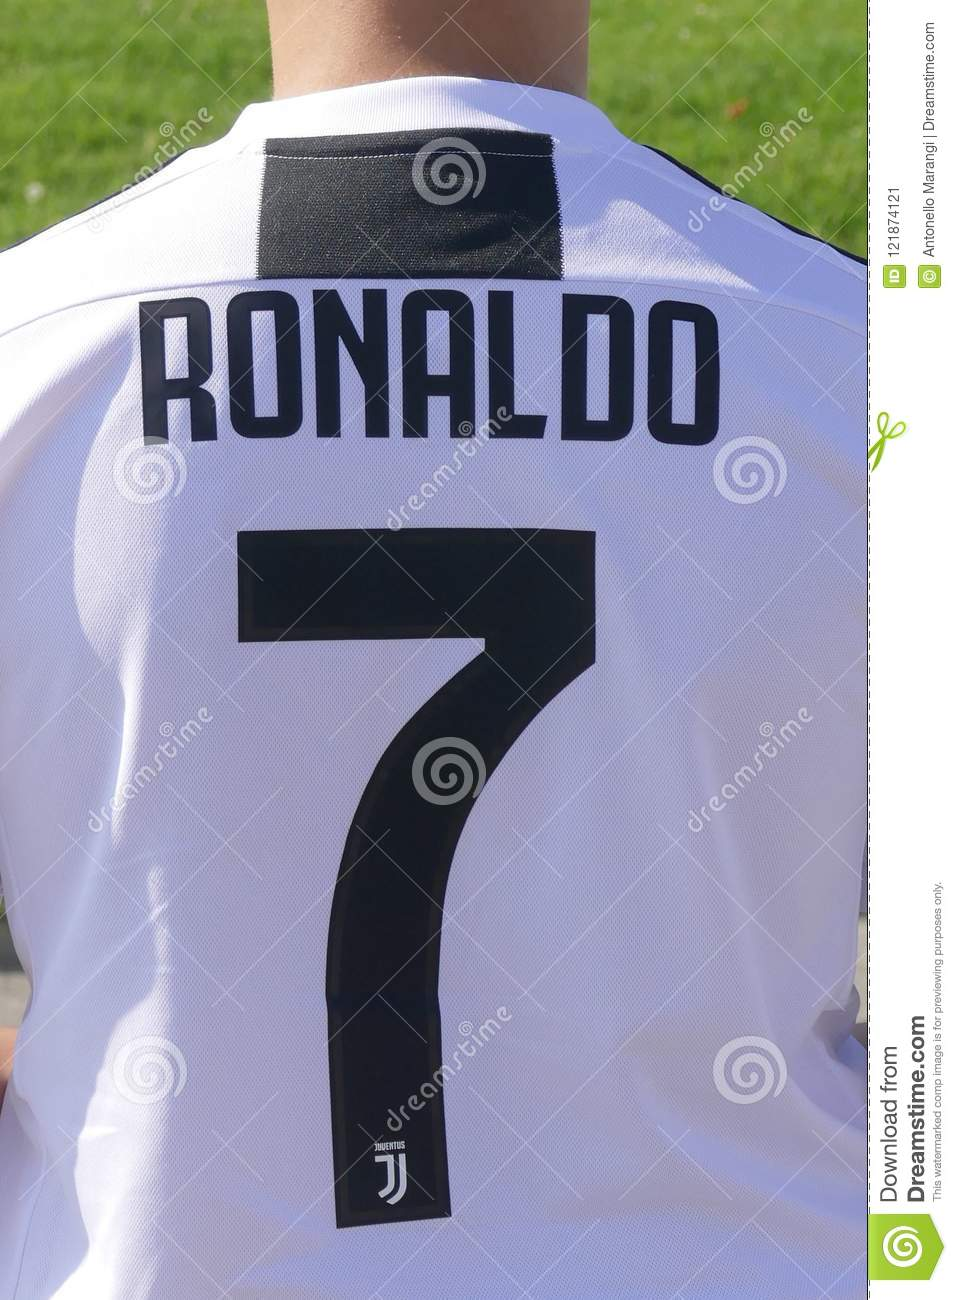 on sale fe2f3 81851 New Team Jersey For Cristiano Ronaldo Player Of Juventus Fc ...